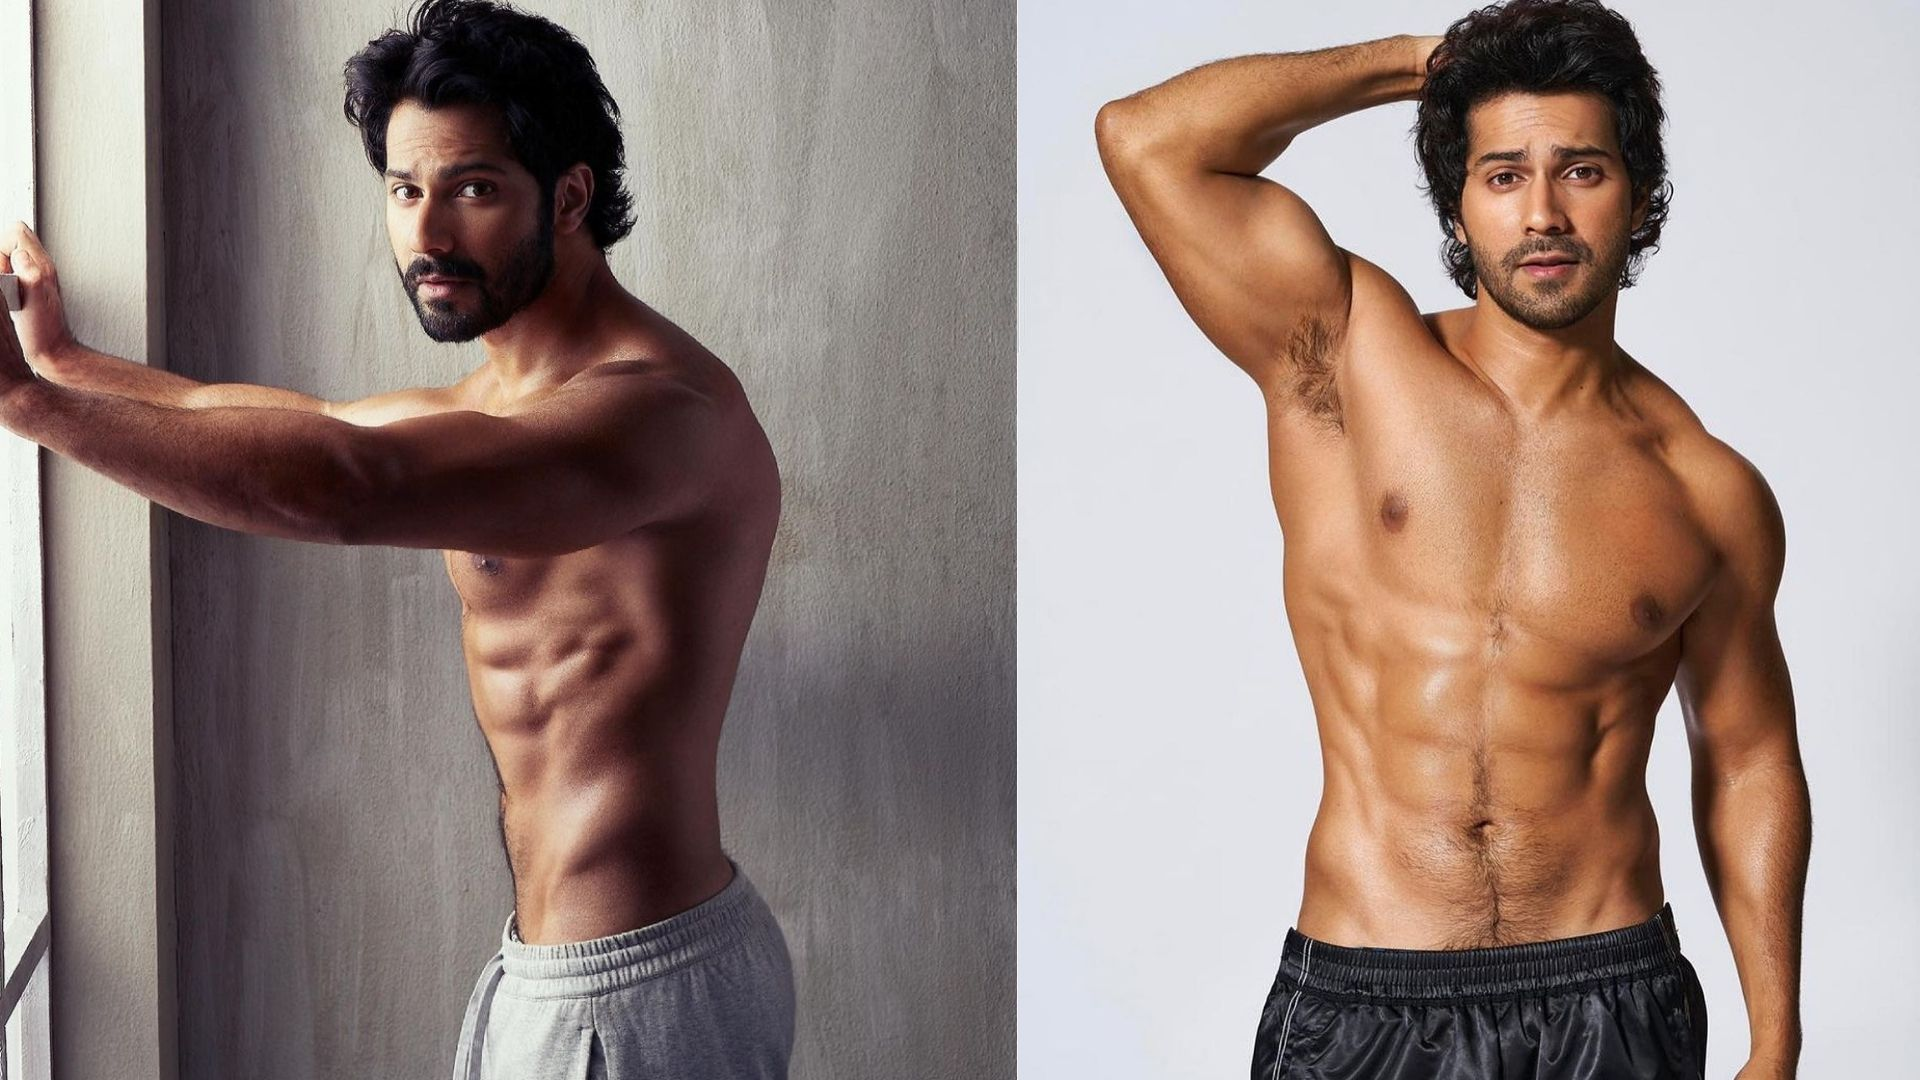 Varun Dhawan's Ripped Hot Bod Is Sure To Make You Want To Sweat It Out In The Gym